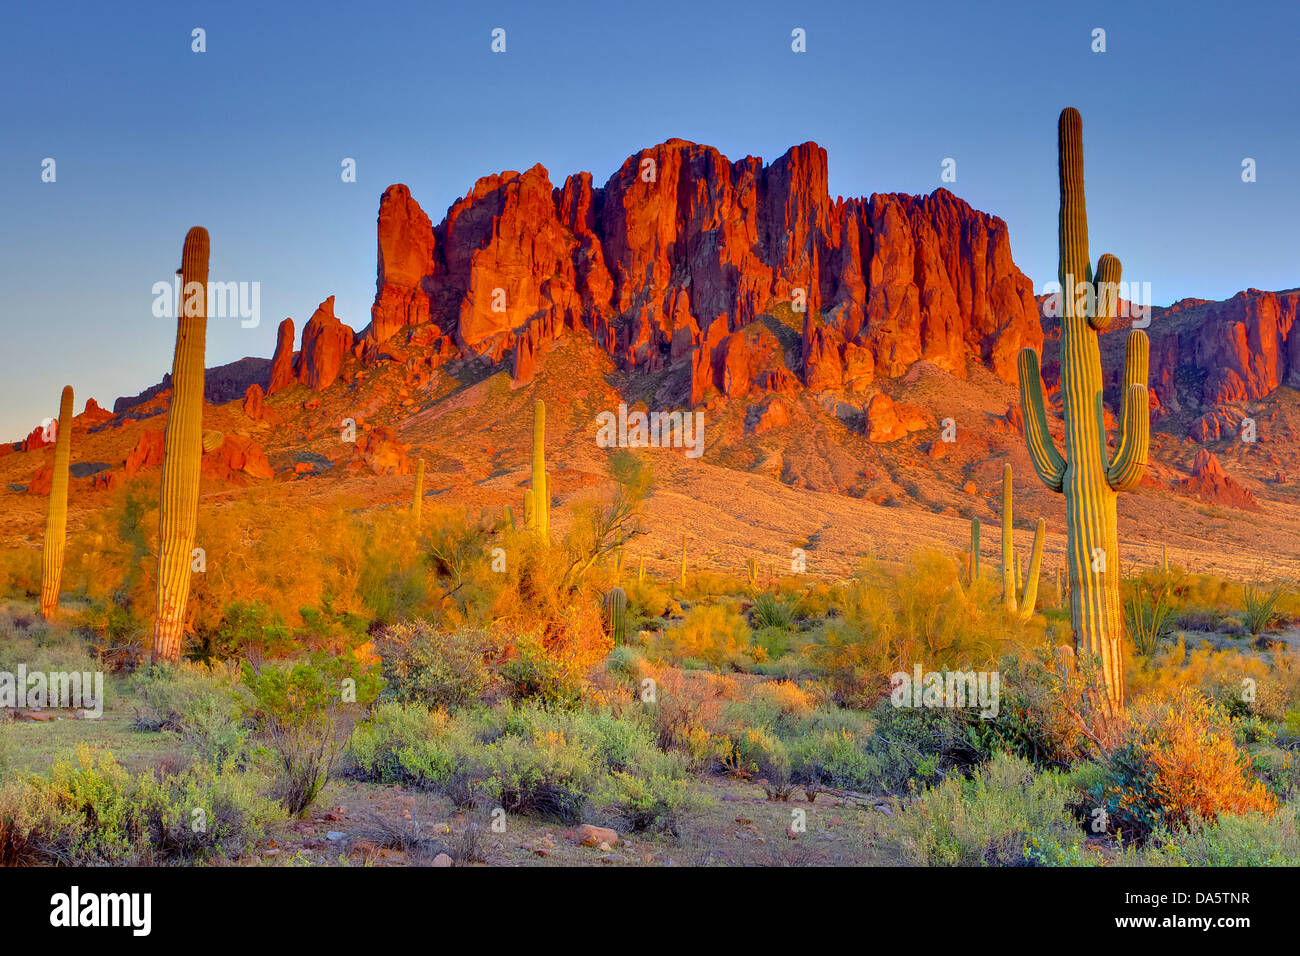 USA United States America Arizona American Southwest Stock - Mountains in the united states